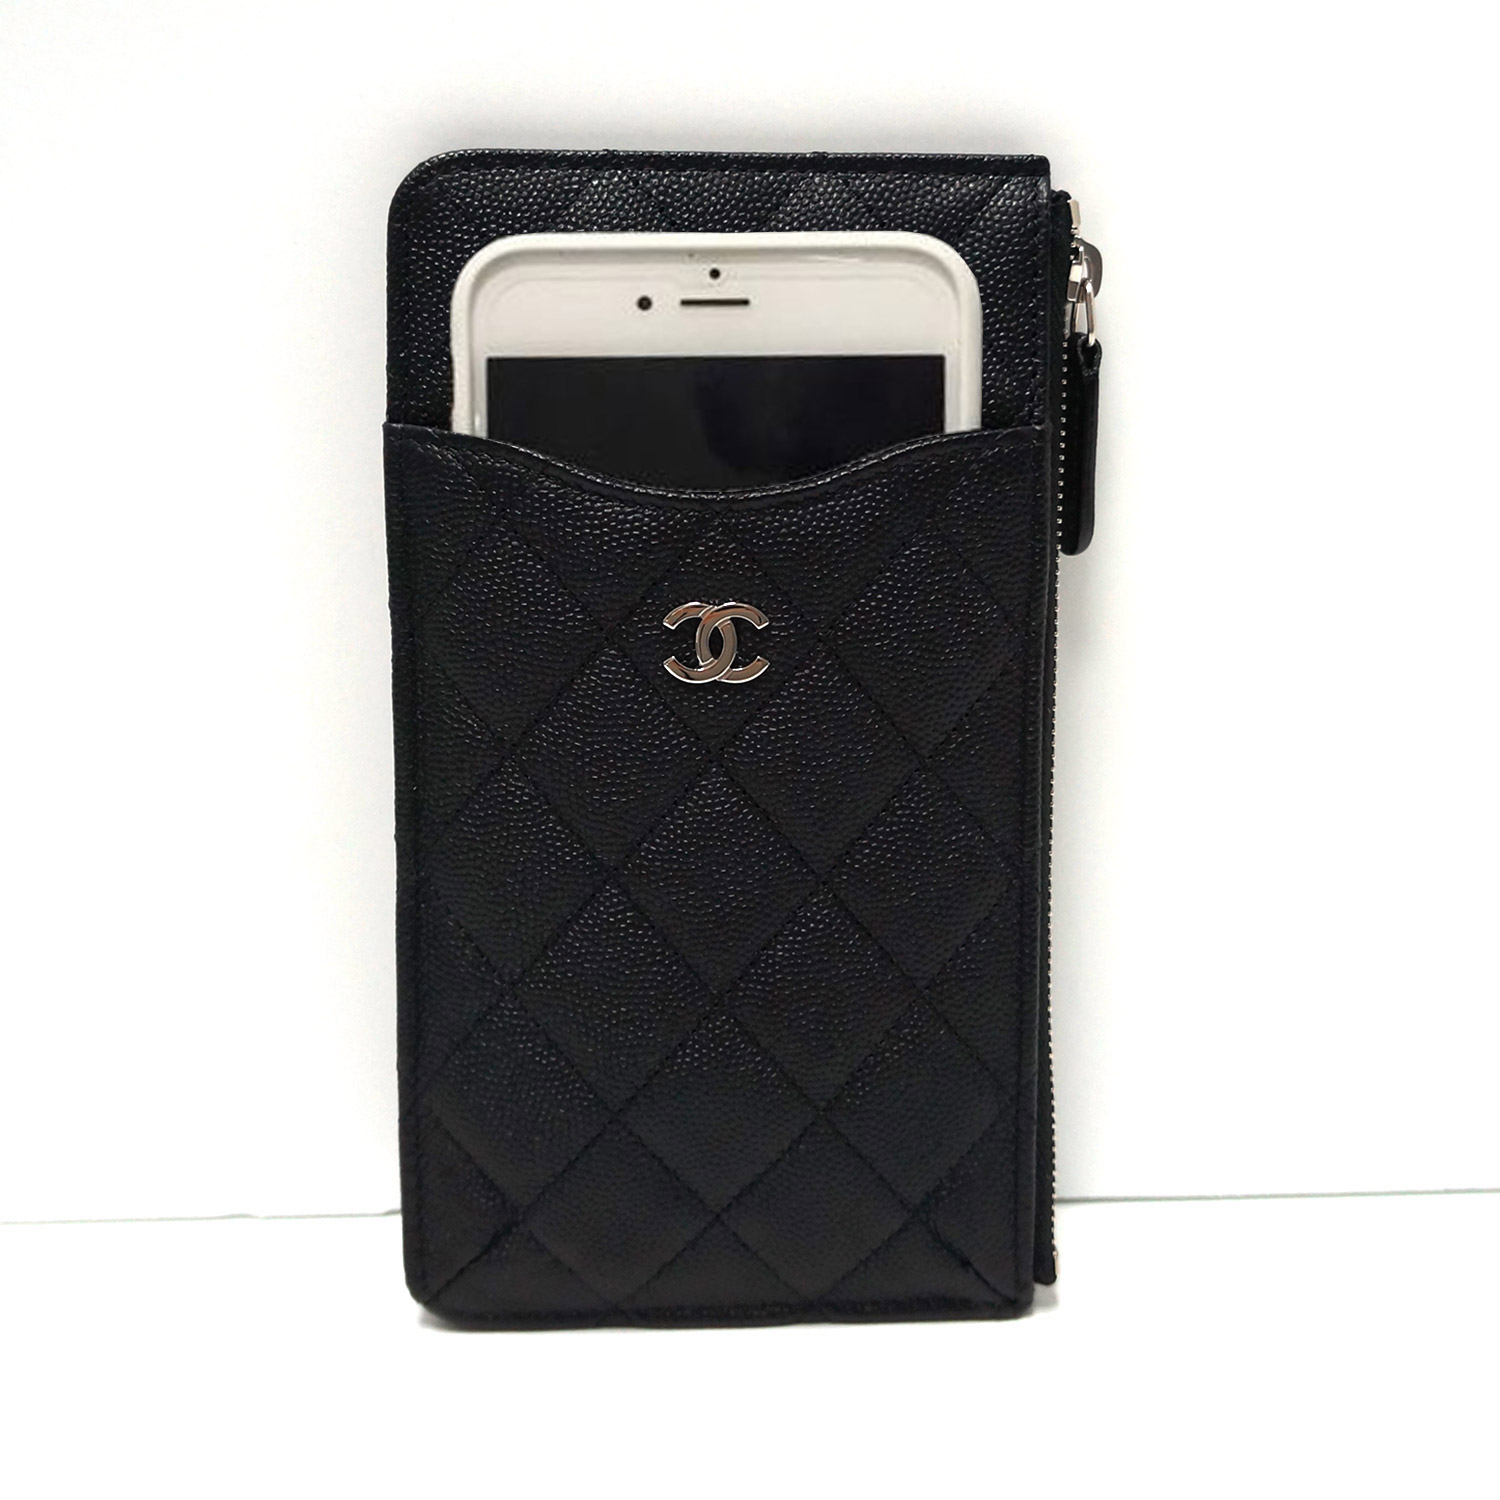 b92c986aa373 Chanel Classic Quilted Black Caviar Leather Flat Wallet Phone Pouch ...